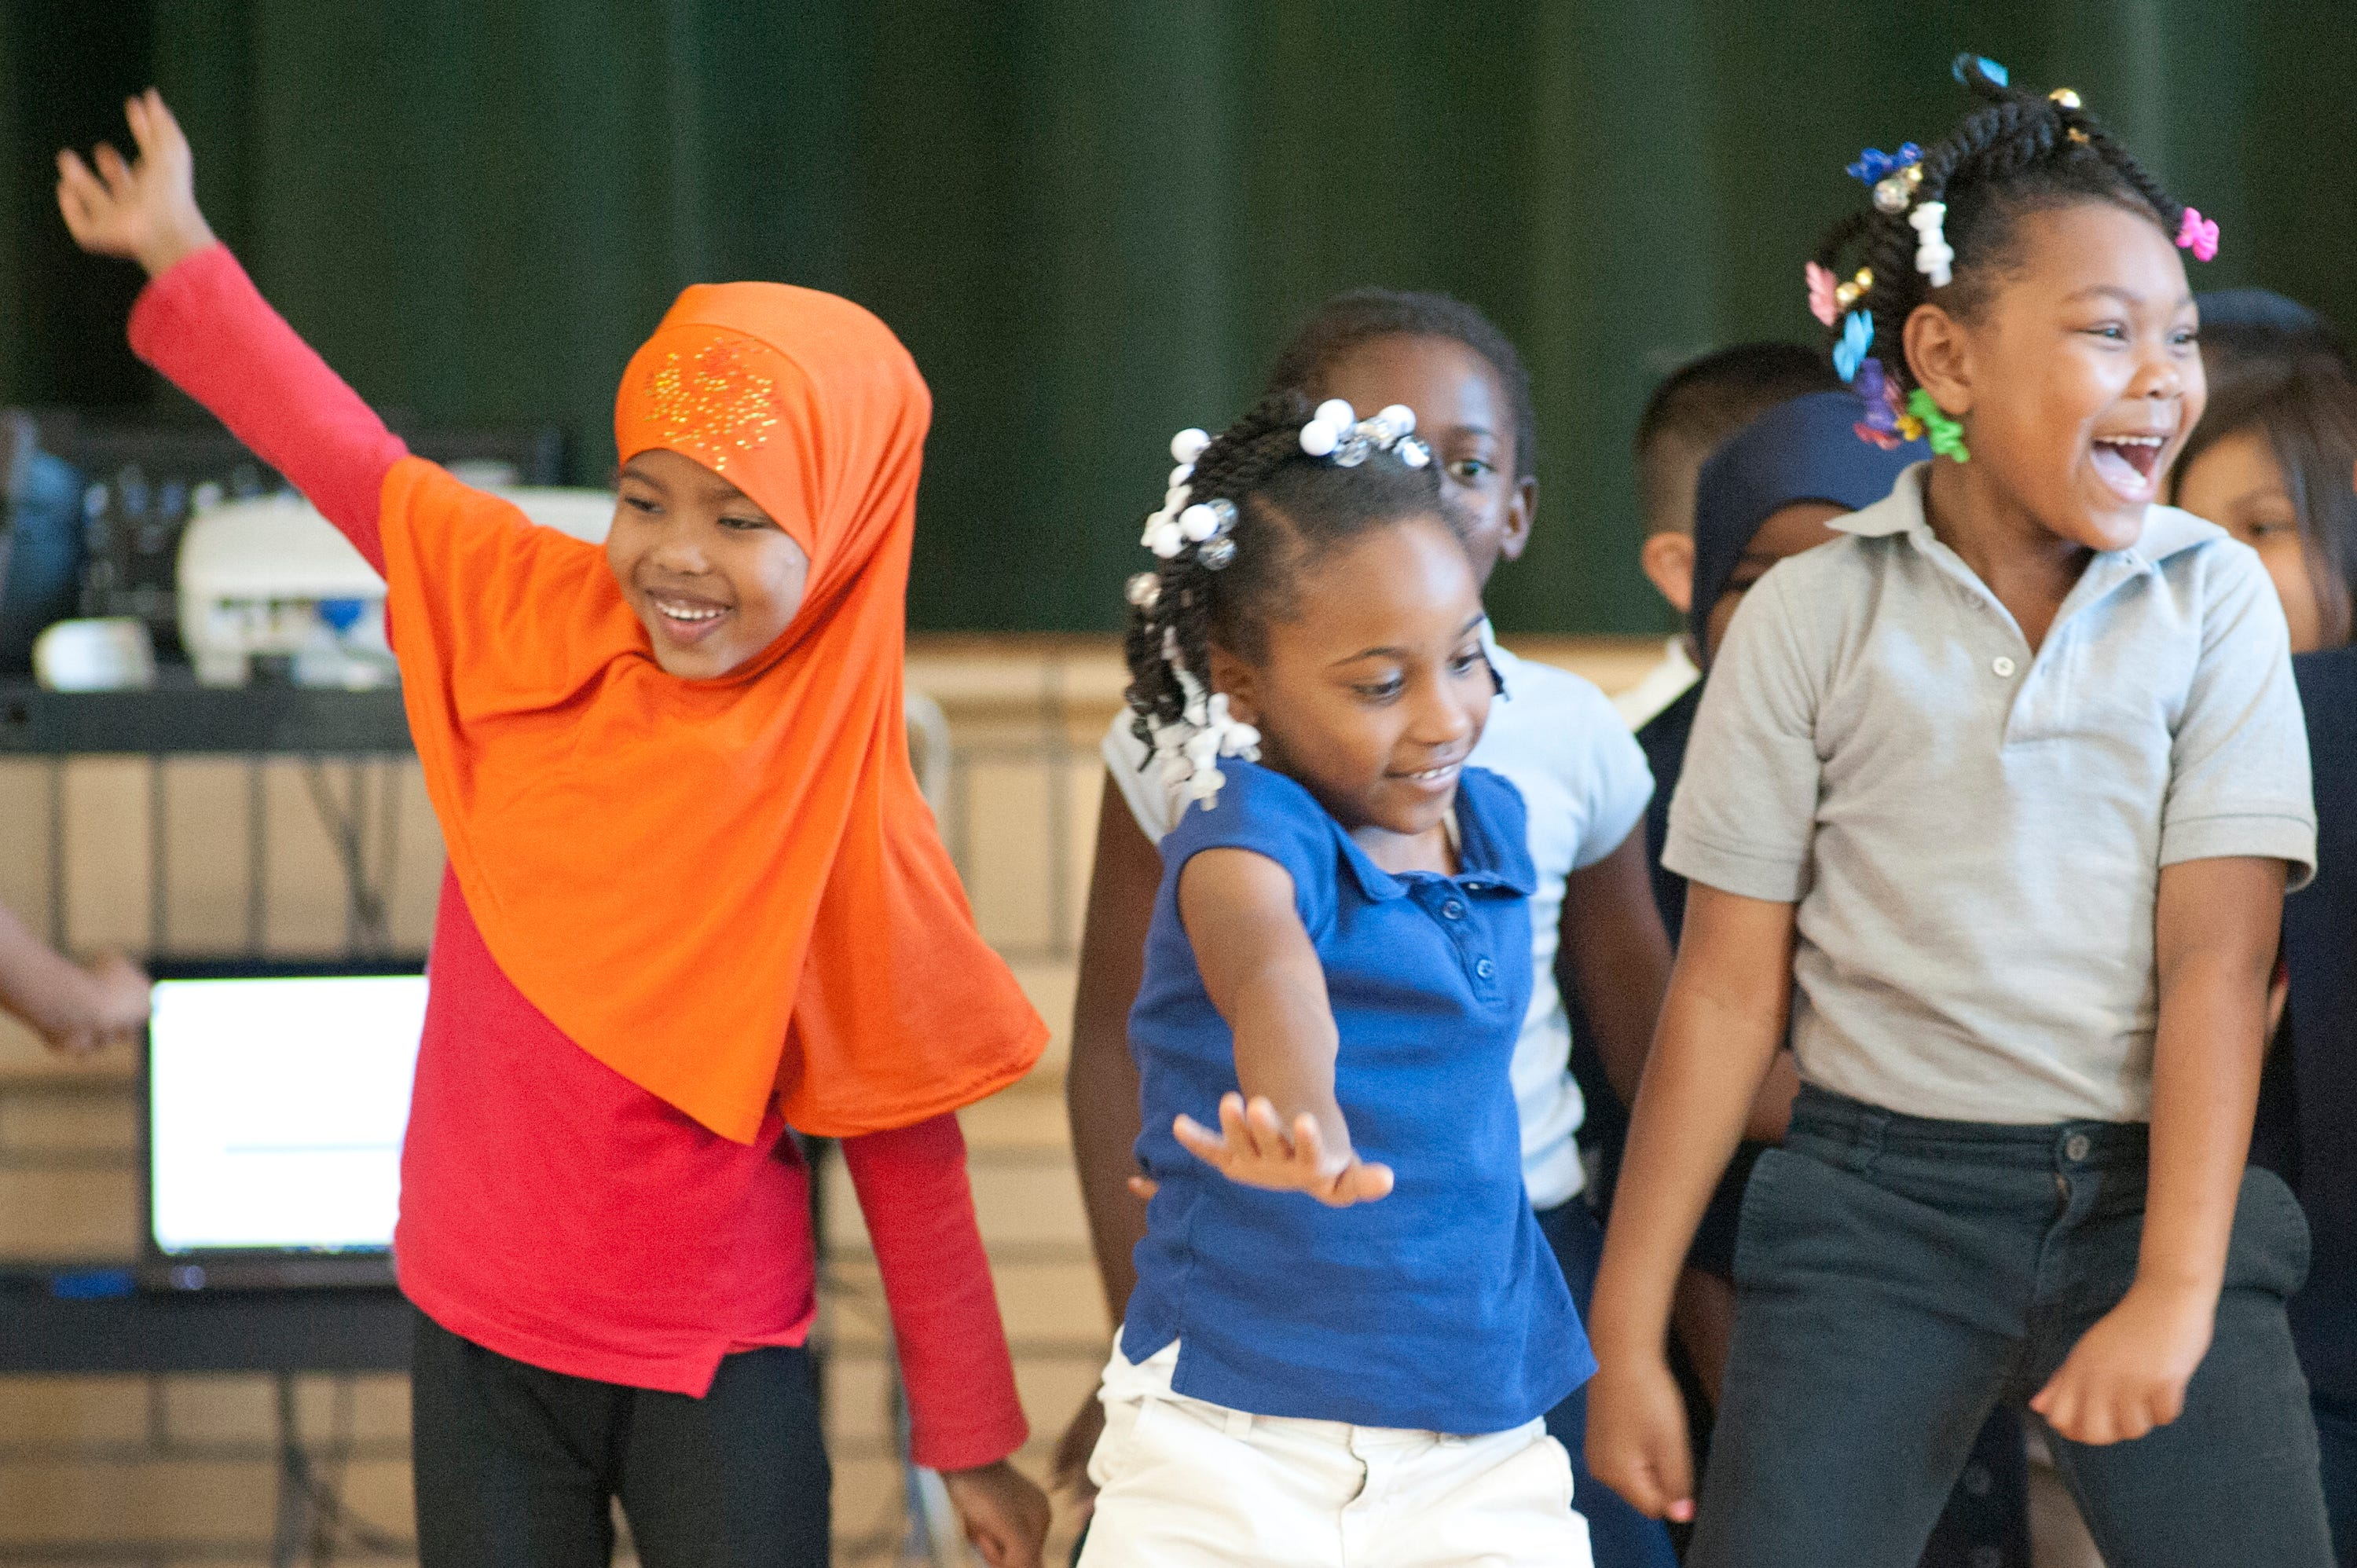 Frayser Elementary School first graders dance to encourage the school's third, fourth and fifth graders to perform well during the 2017  KPREP tests. From left, Naiomo Omar, D'Asia Keen and Jada Porter. May 3, 2017.